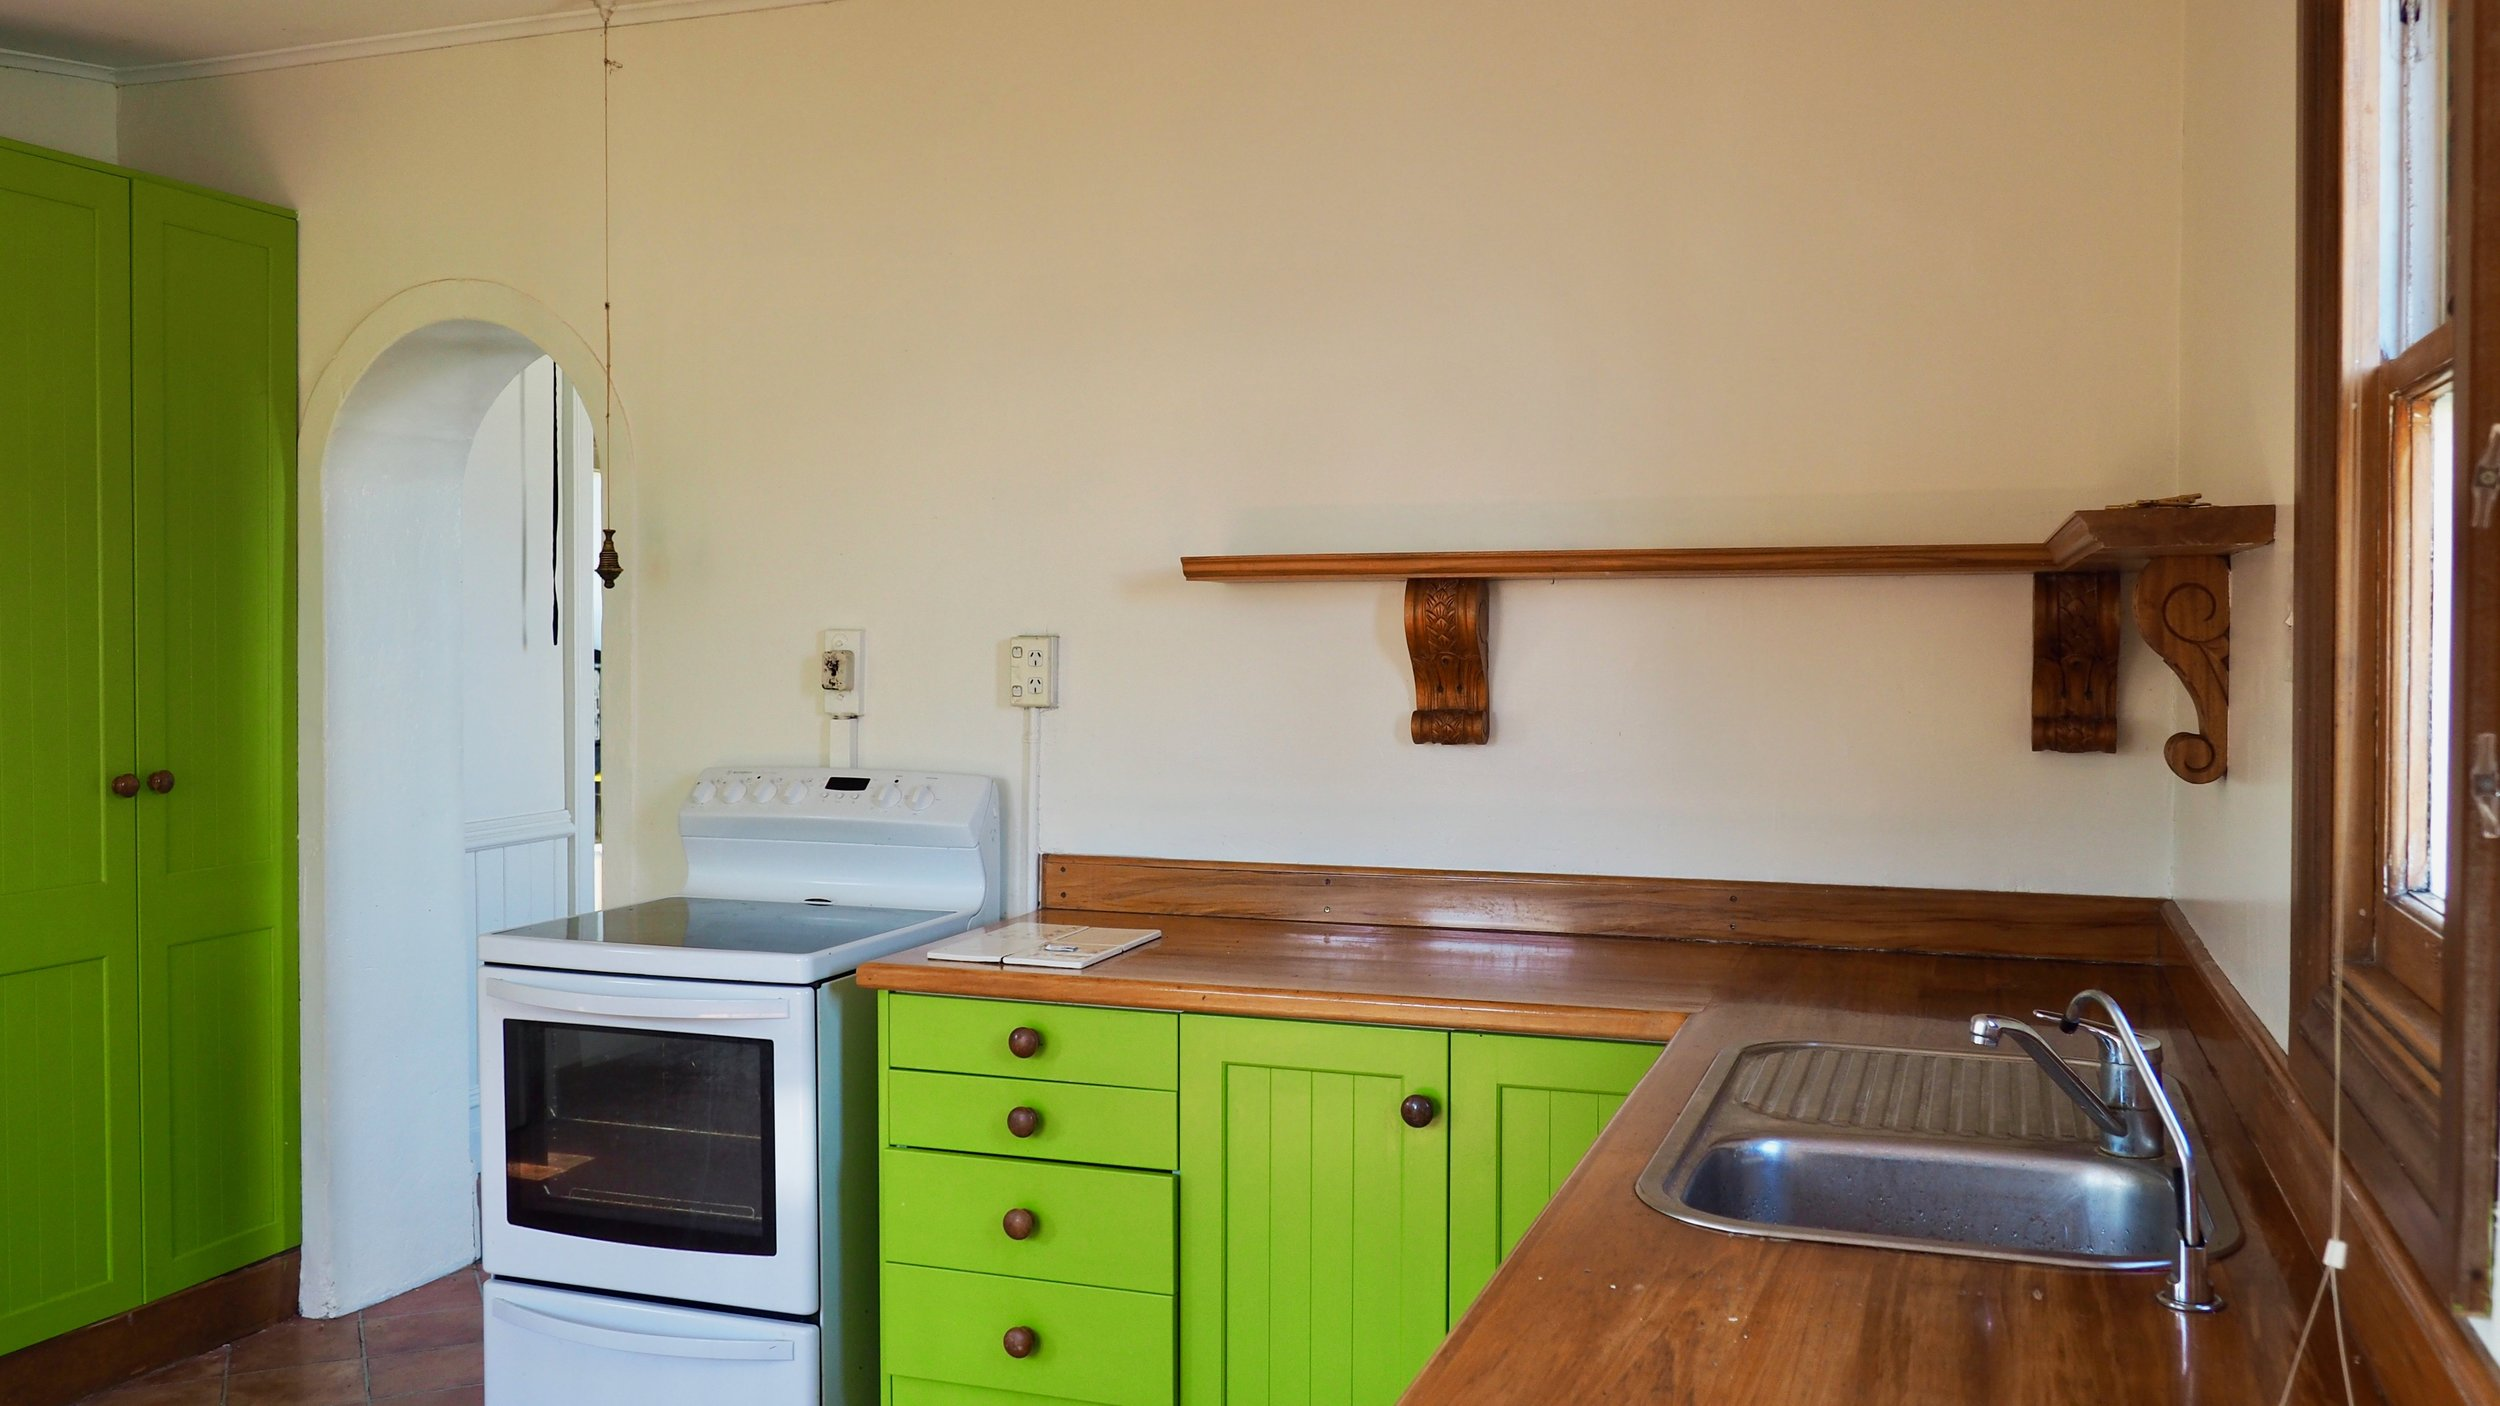 Alice and Caleb Pearson + Projects Renovation Road Trip Charmer in Alexandra Before Renovation DIY The Block NZ - 10.jpg